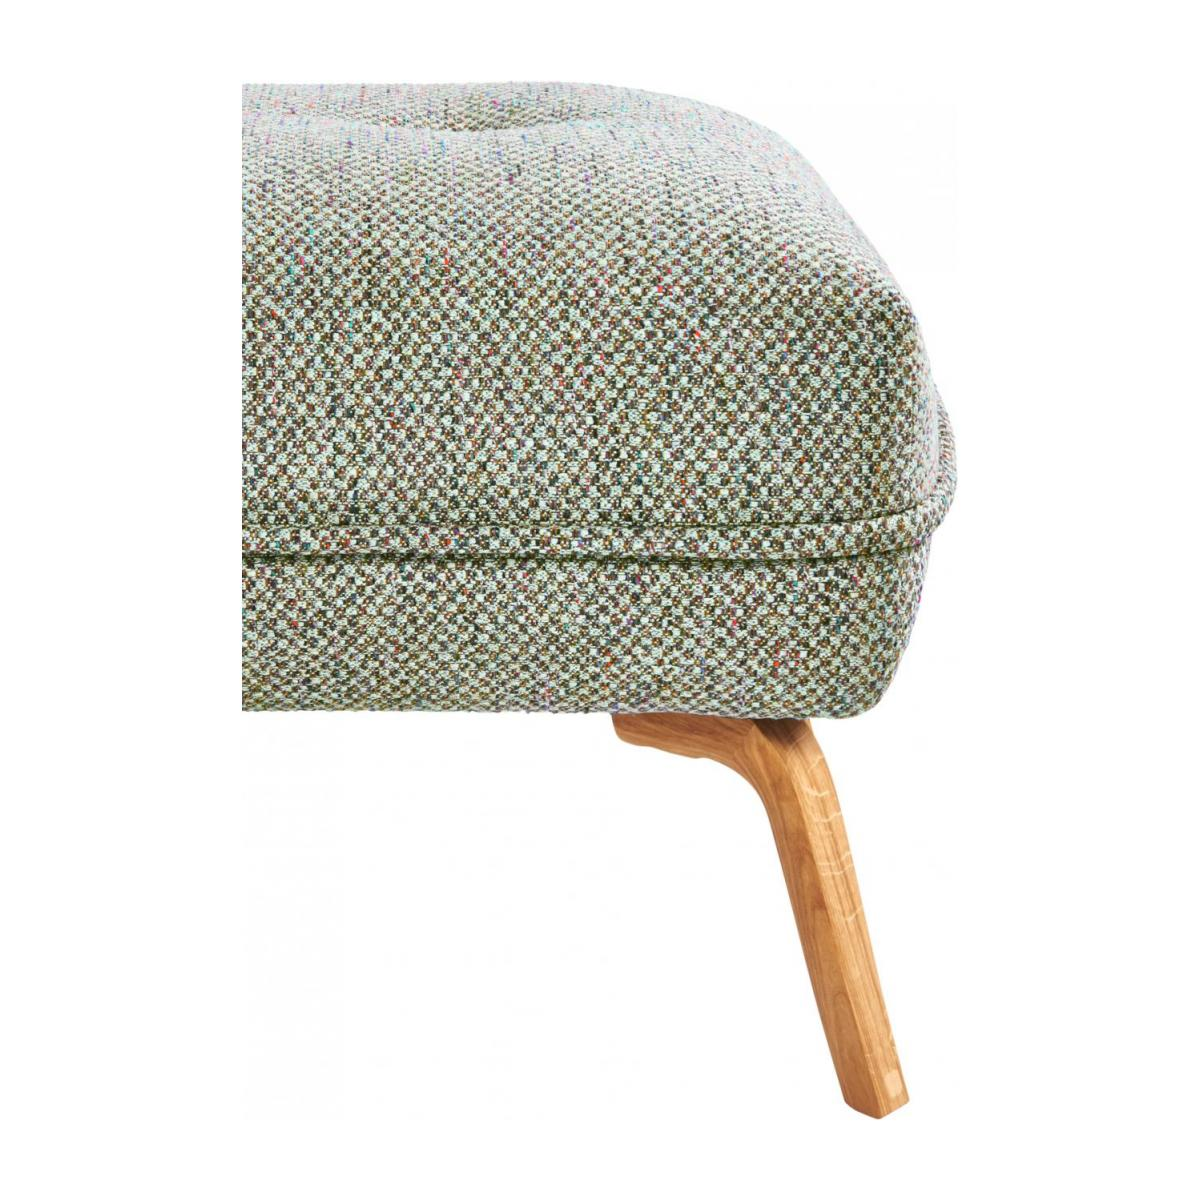 Footstool in Bellagio fabric, organic green and oak legs n°5